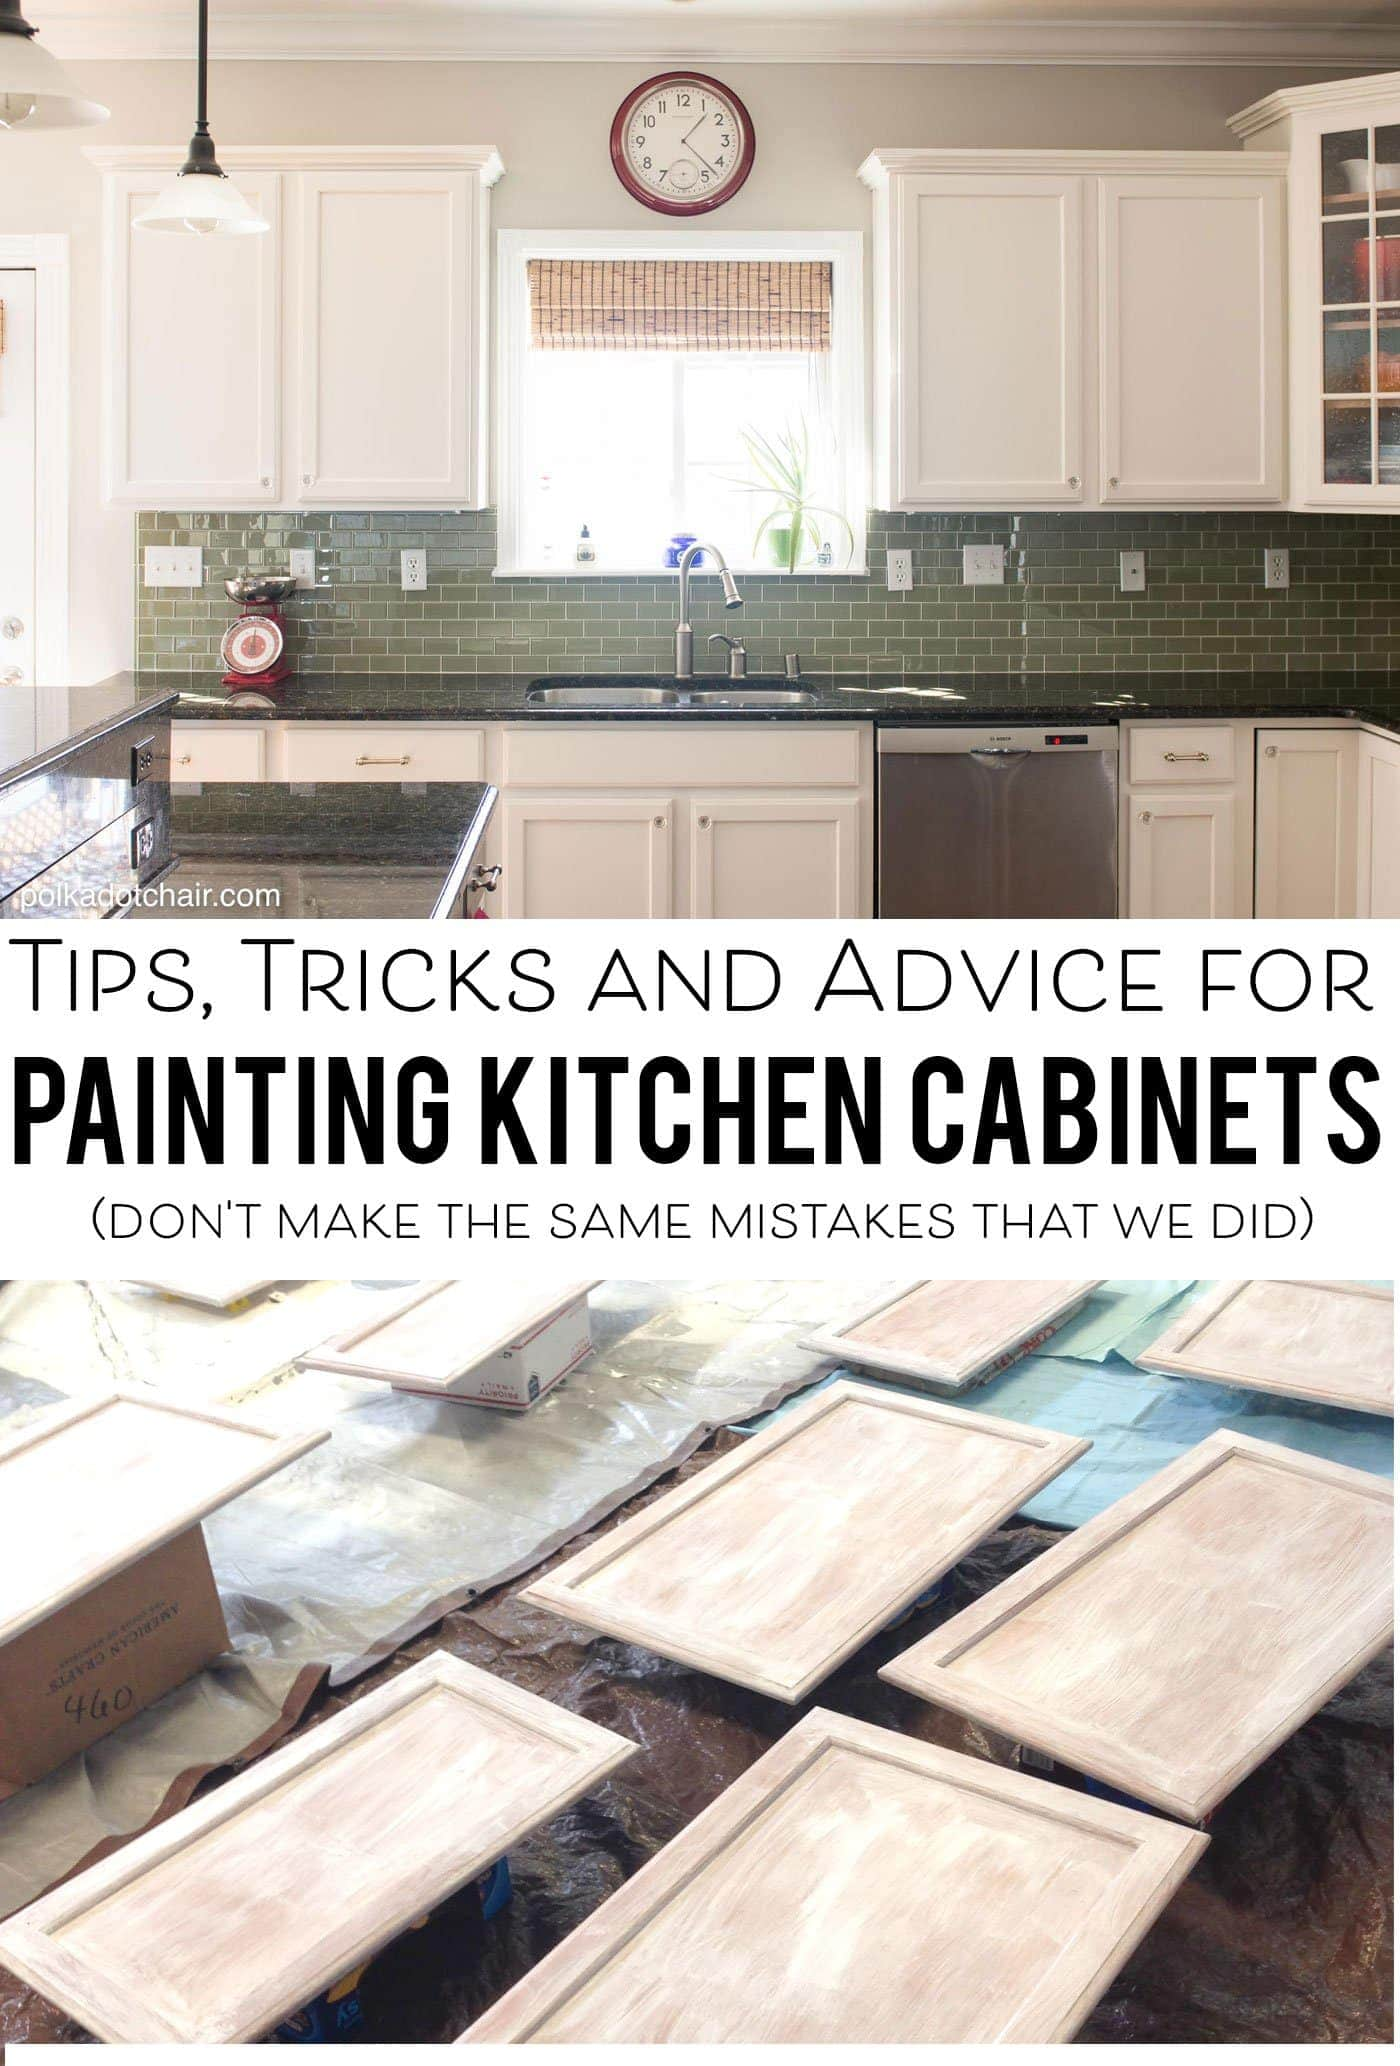 tips for painting kitchen cabinets kitchen cabinet painting Tips and Tricks and what NOT to do when painting your kitchen cabinets